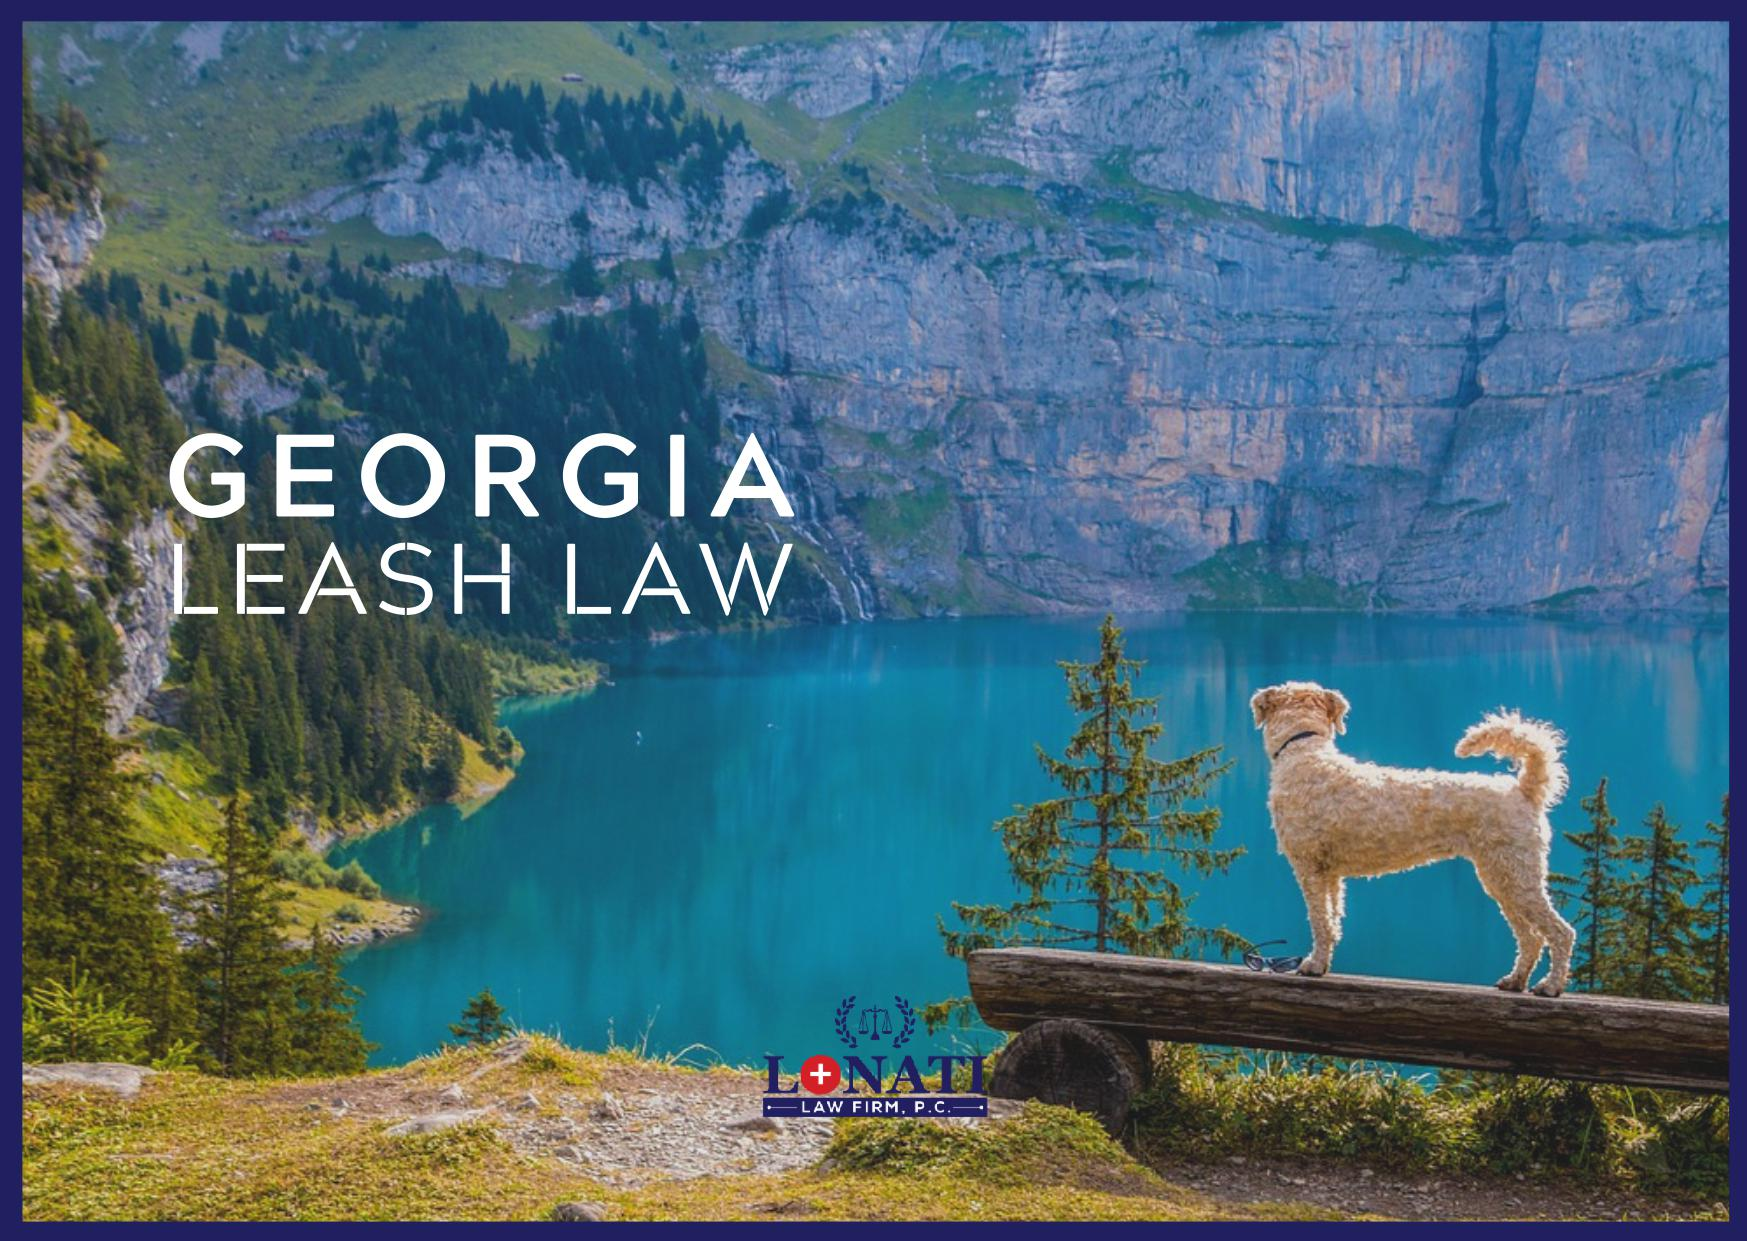 Physical Restraint Common At Georgias >> Georgia Leash Law What Should You Know